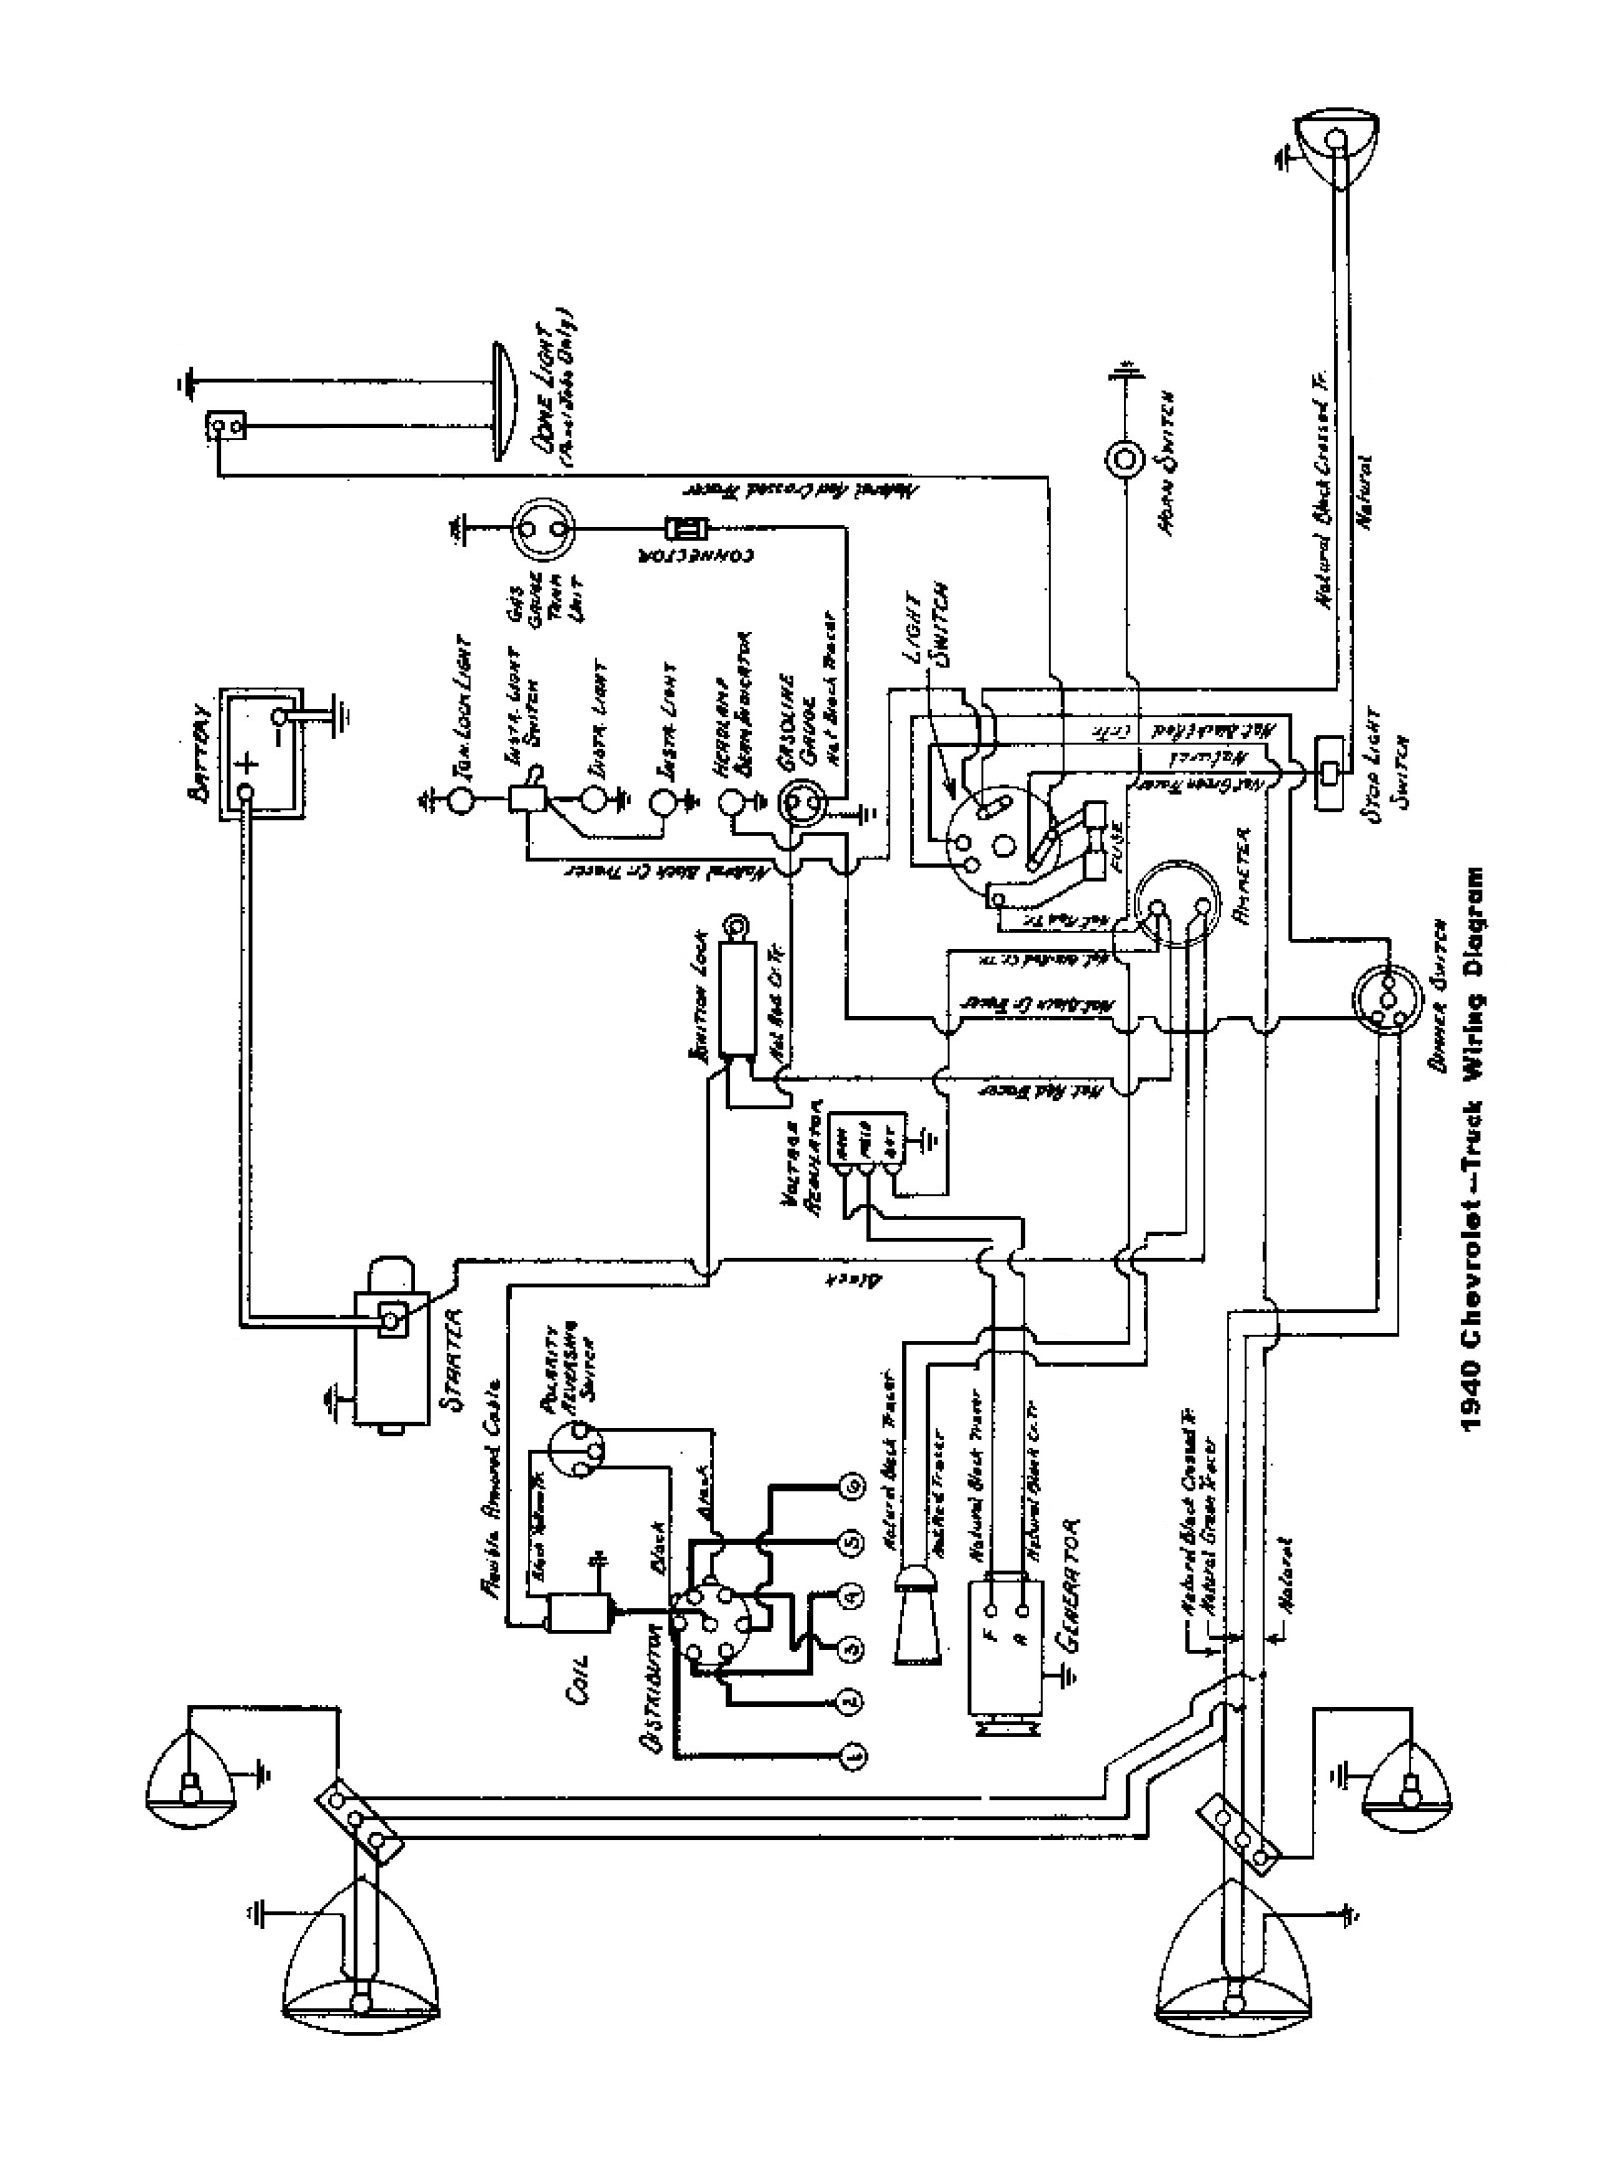 56 chevy wiring diagram